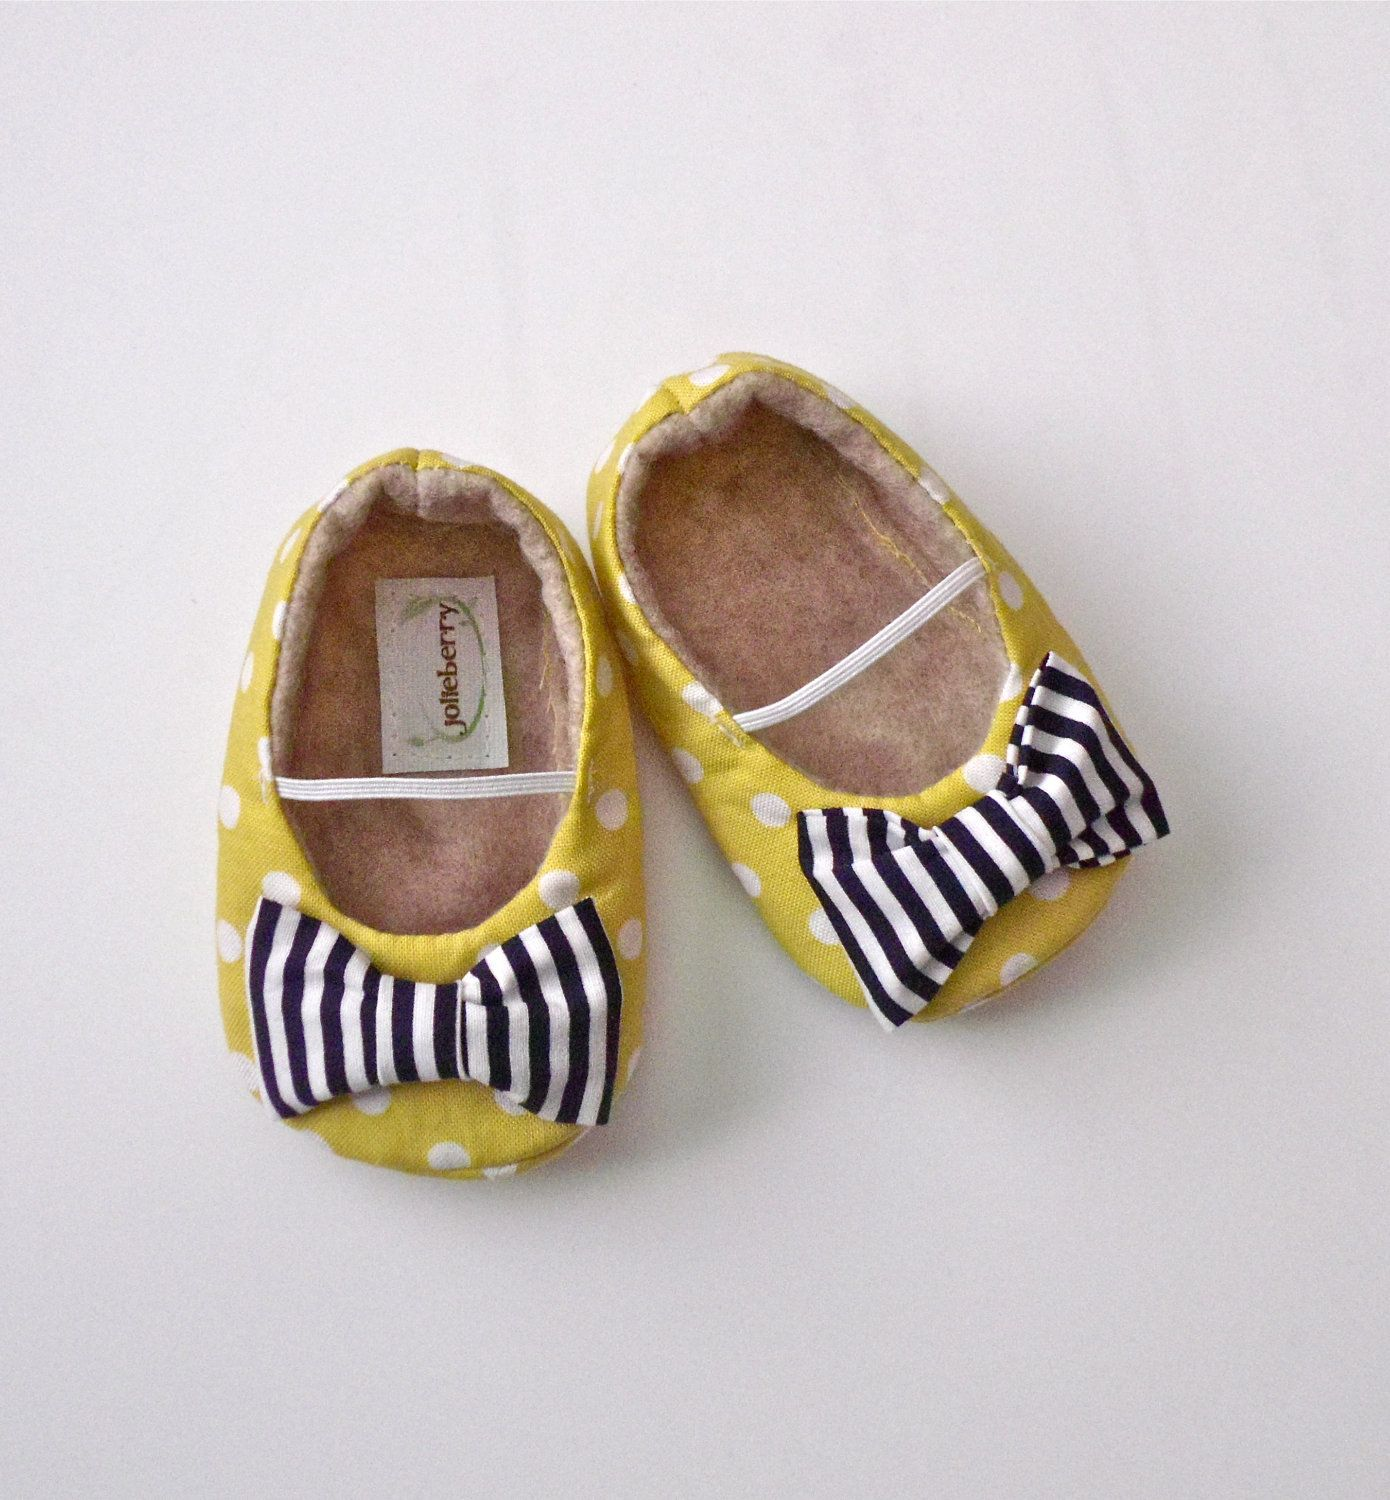 EDEN baby girl shoes lime green polka dot with navy blue stripe